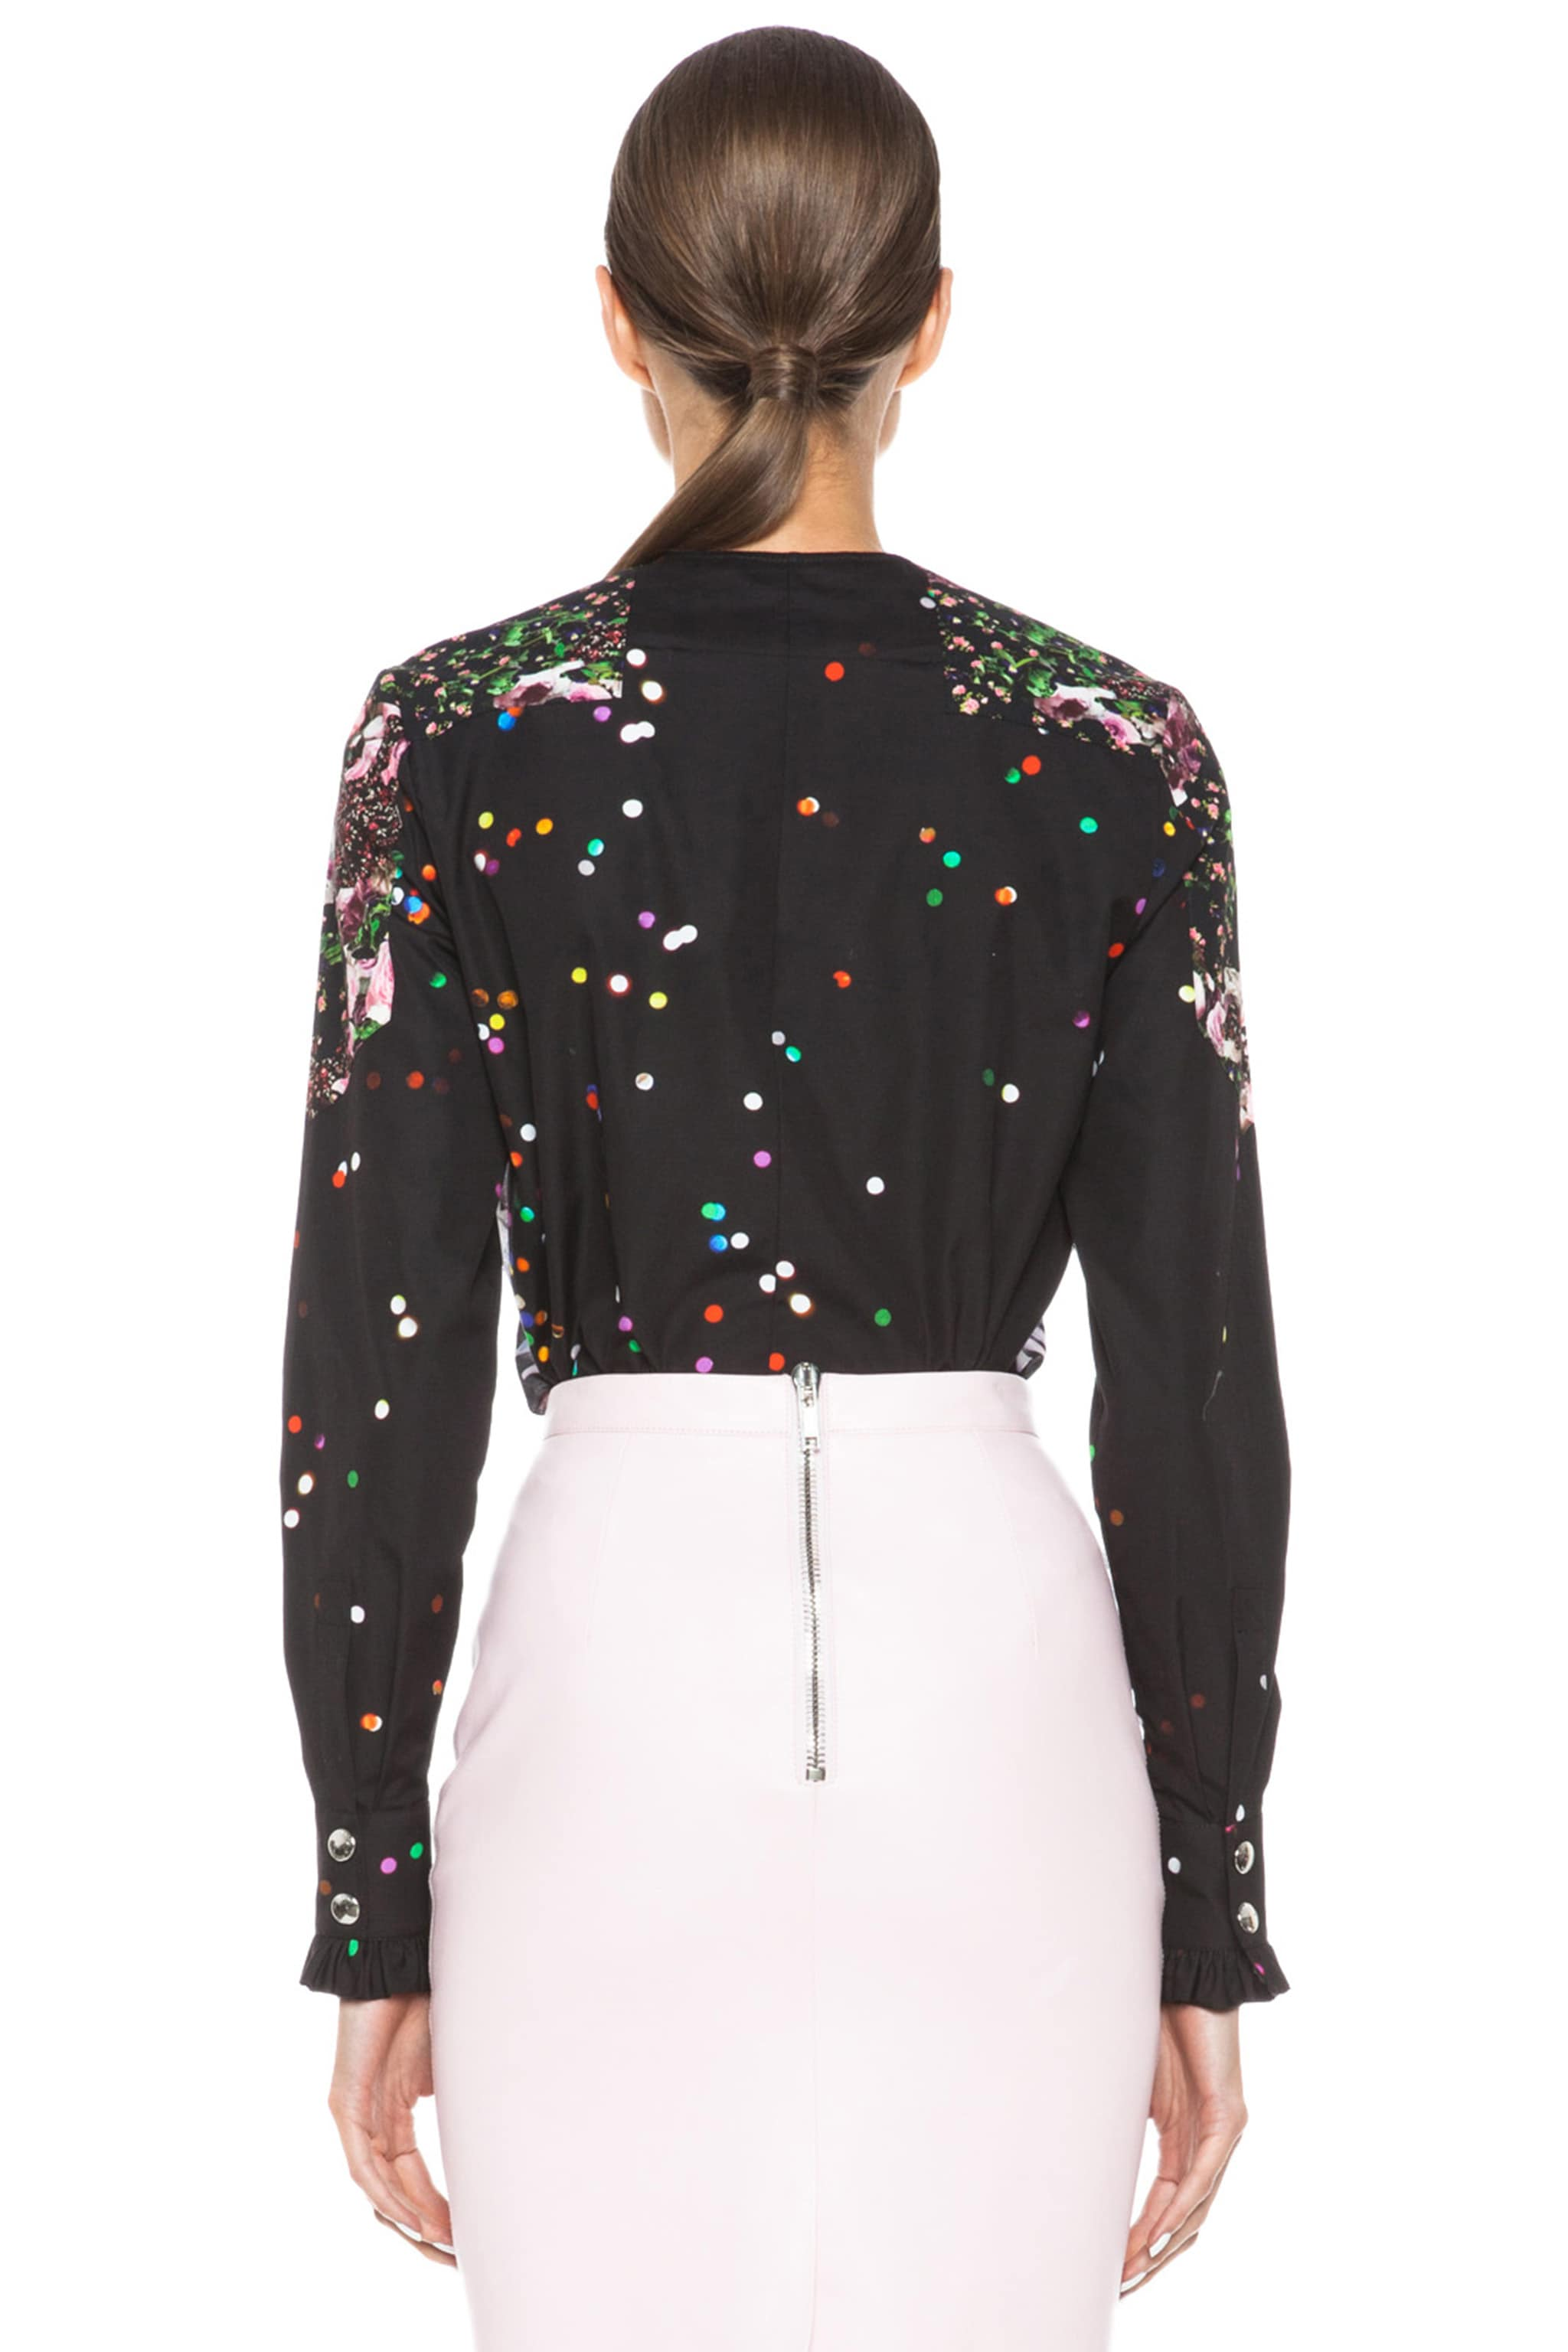 Image 4 of GIVENCHY Mix Print Poplin Cotton Blouse in Black Multi